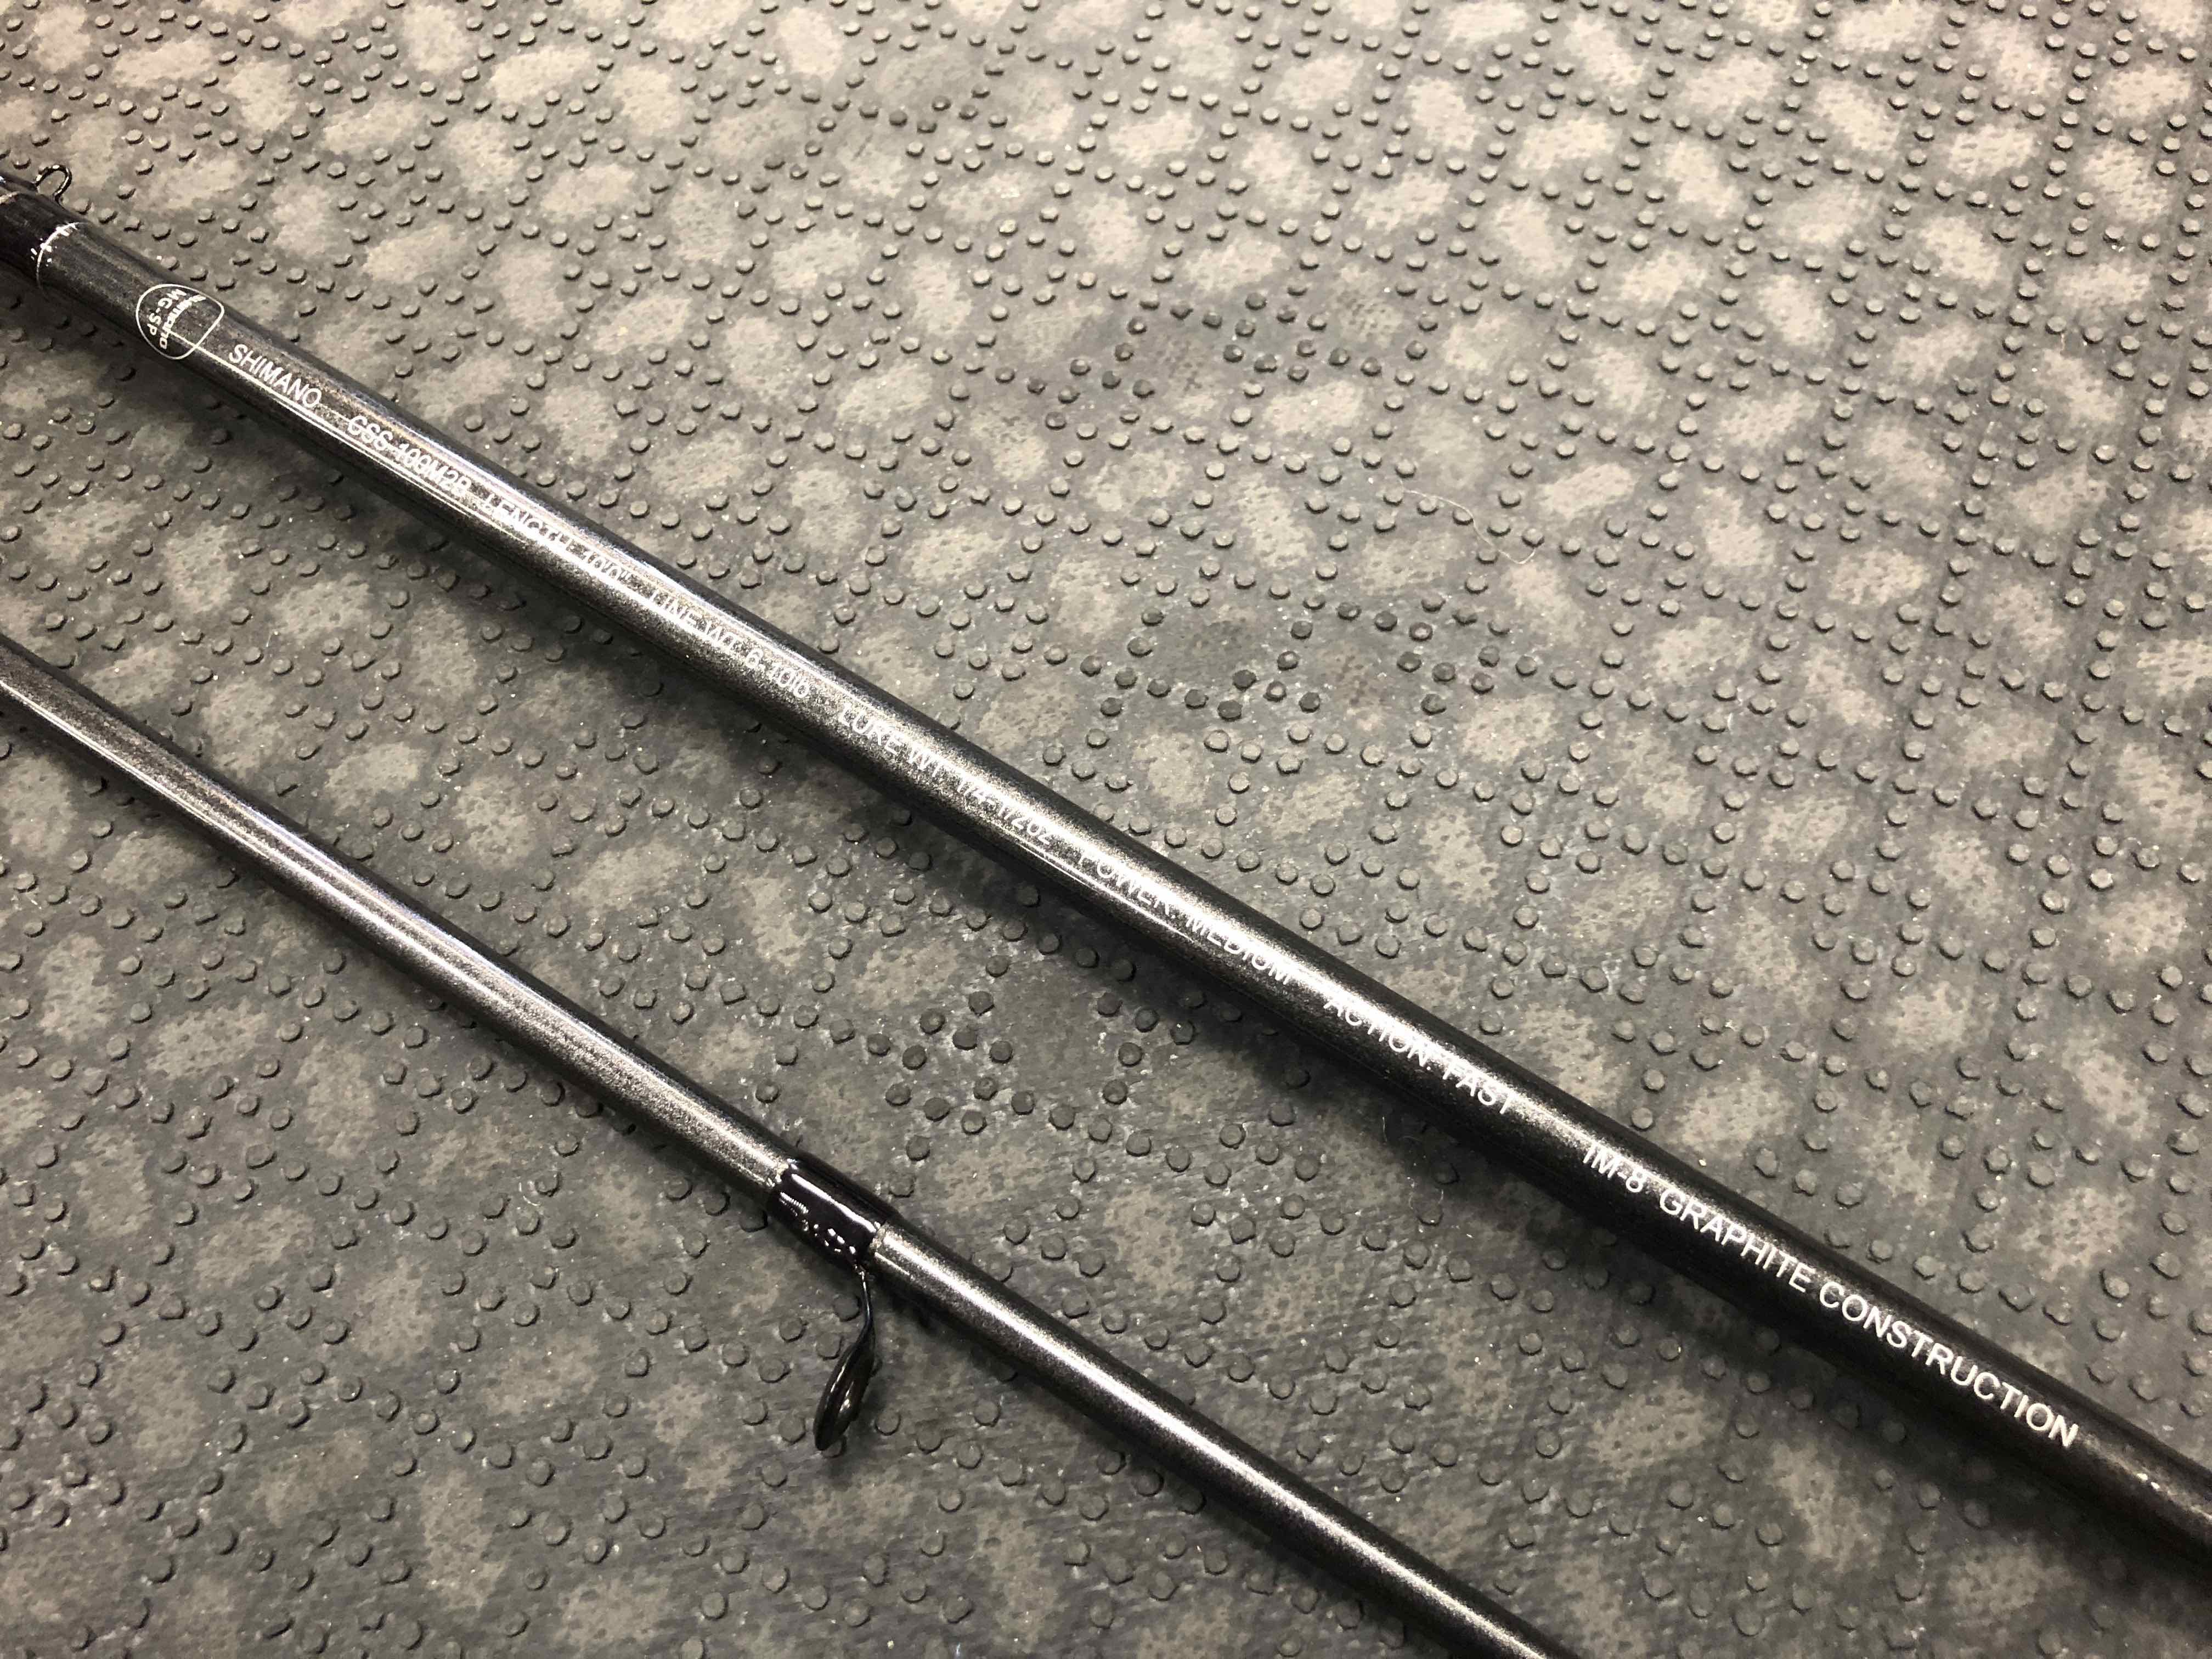 Shimano Clarus - CSS100-M2B - 10' 2Pc Spinning Rod - GREAT SHAPE! - $80